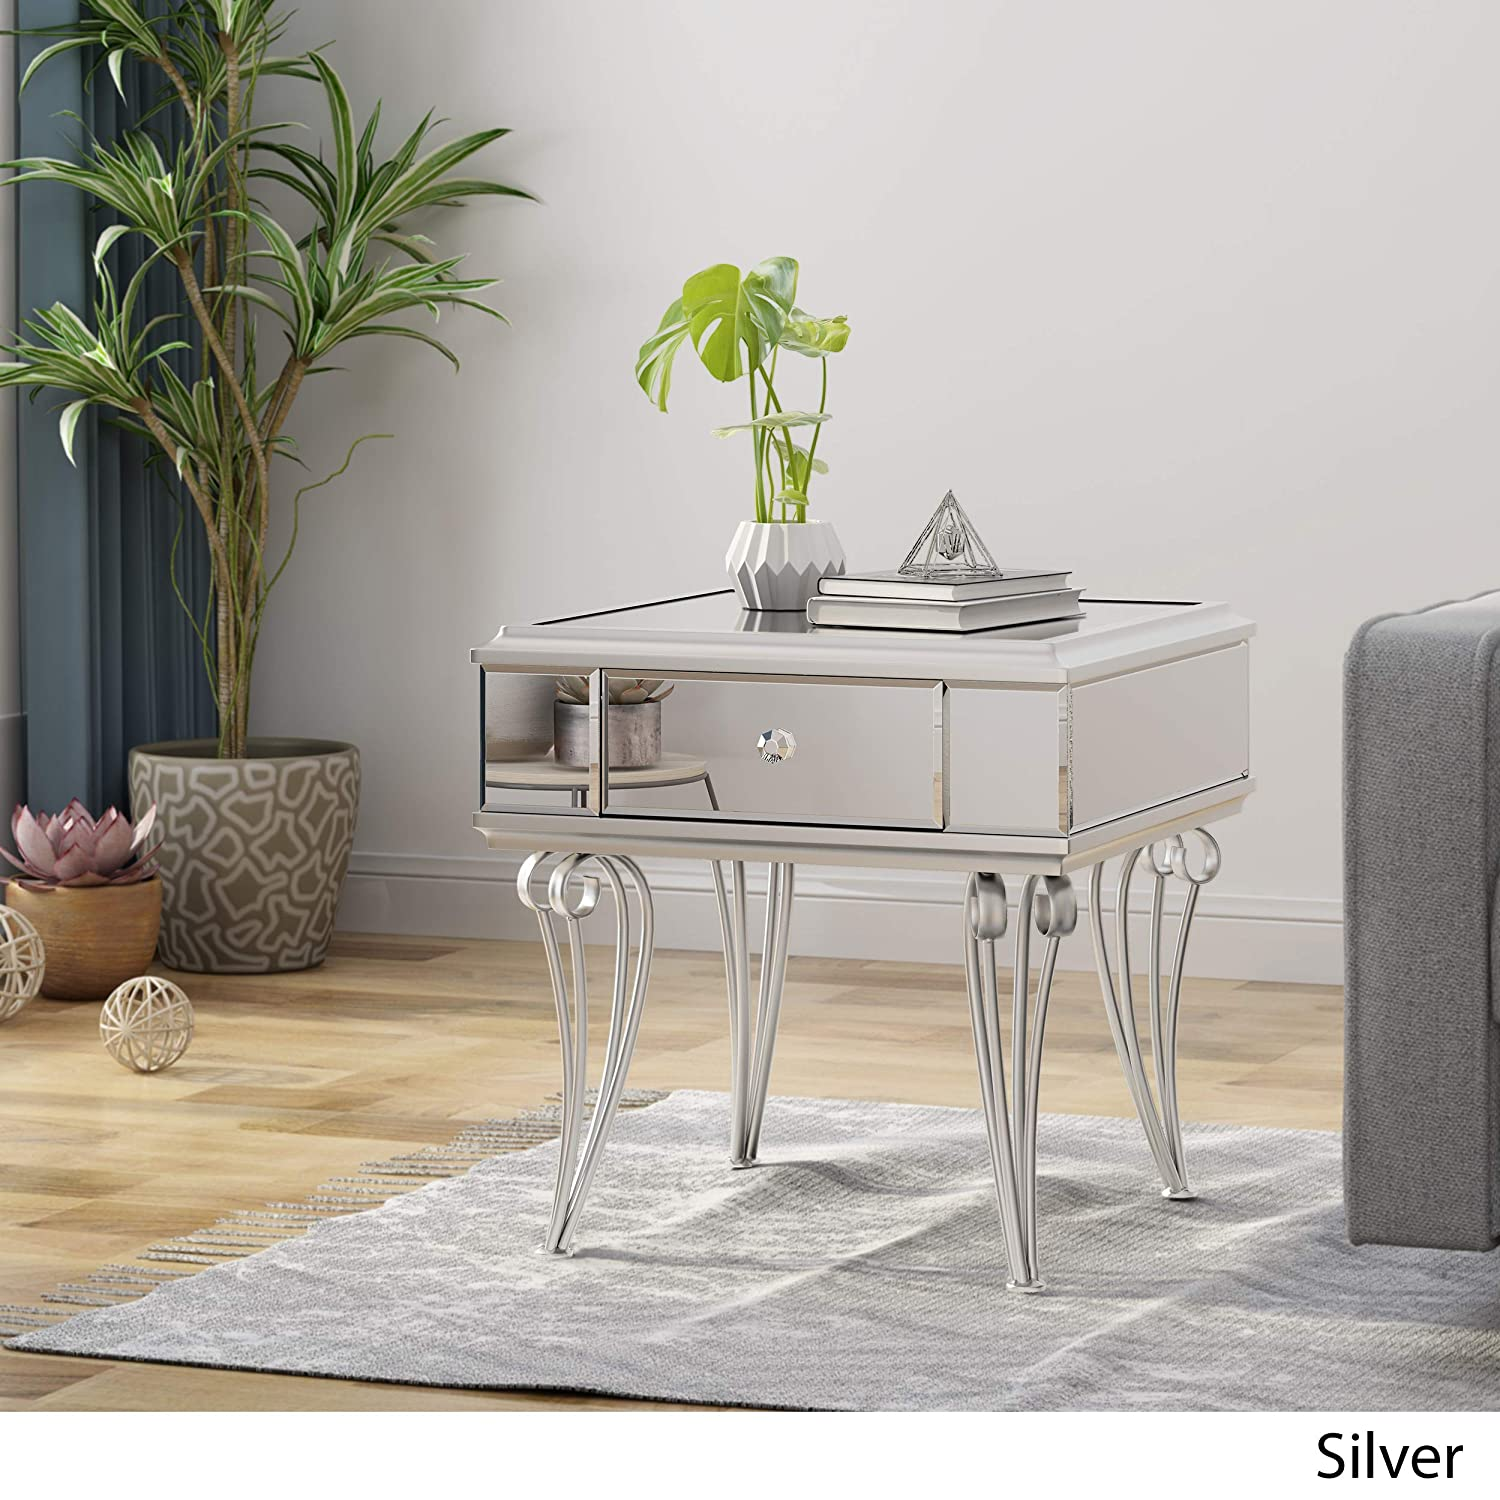 Great Deal Furniture 307441 Mamie Modern Mirrored Accent Table with Drawer, Tempered Glass, Silver Iron Frame,